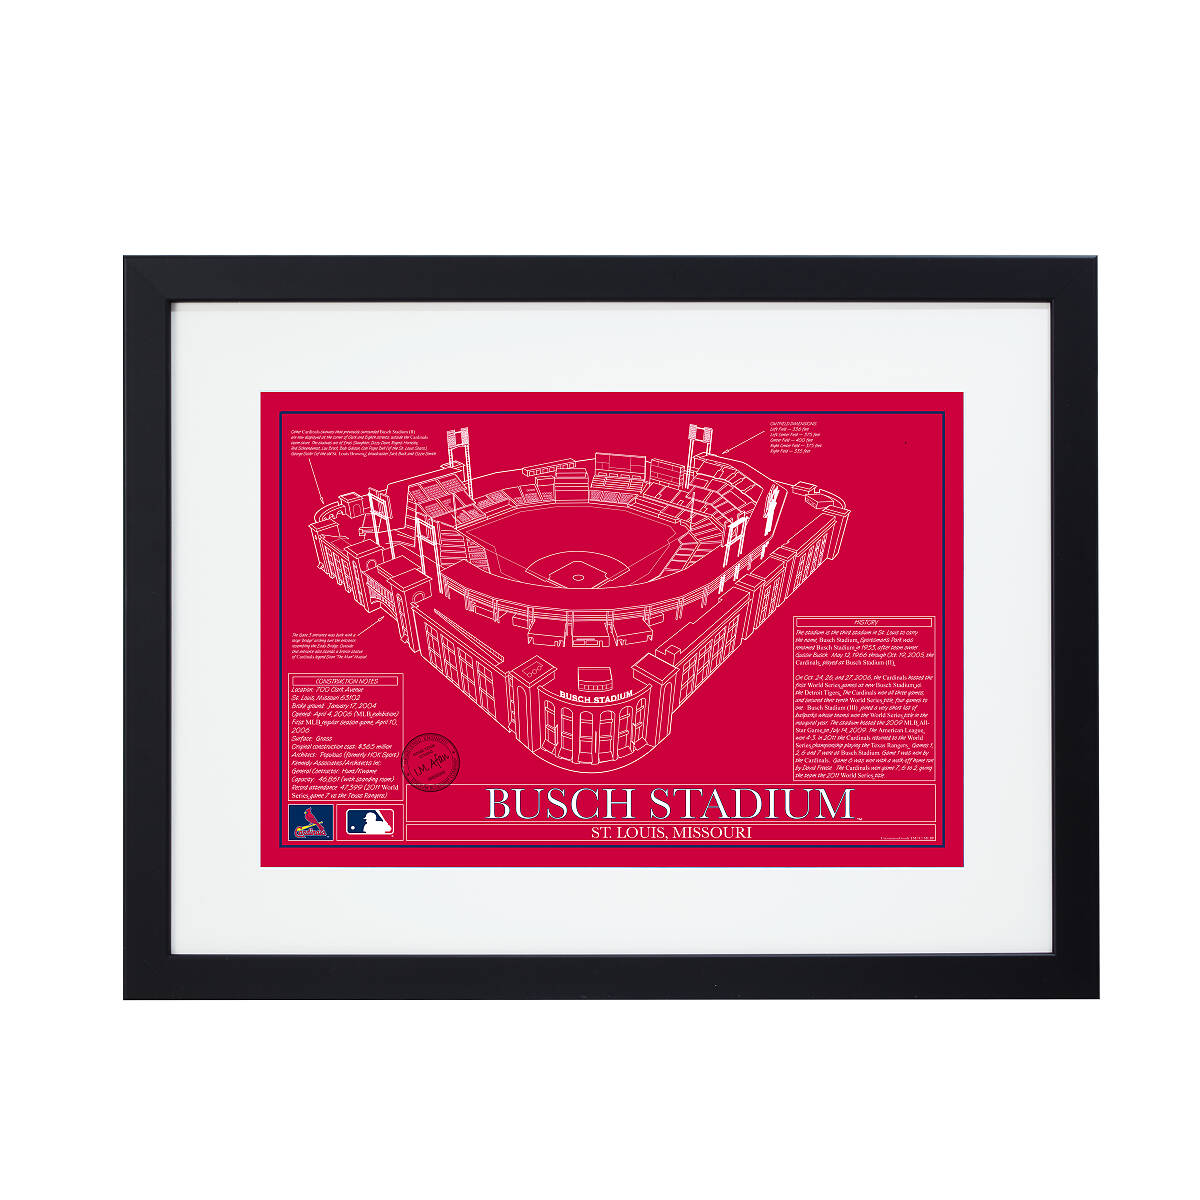 Baseball stadium blueprints team colors sport lover gifts baseball stadium blueprints team colors 4 thumbnail malvernweather Choice Image